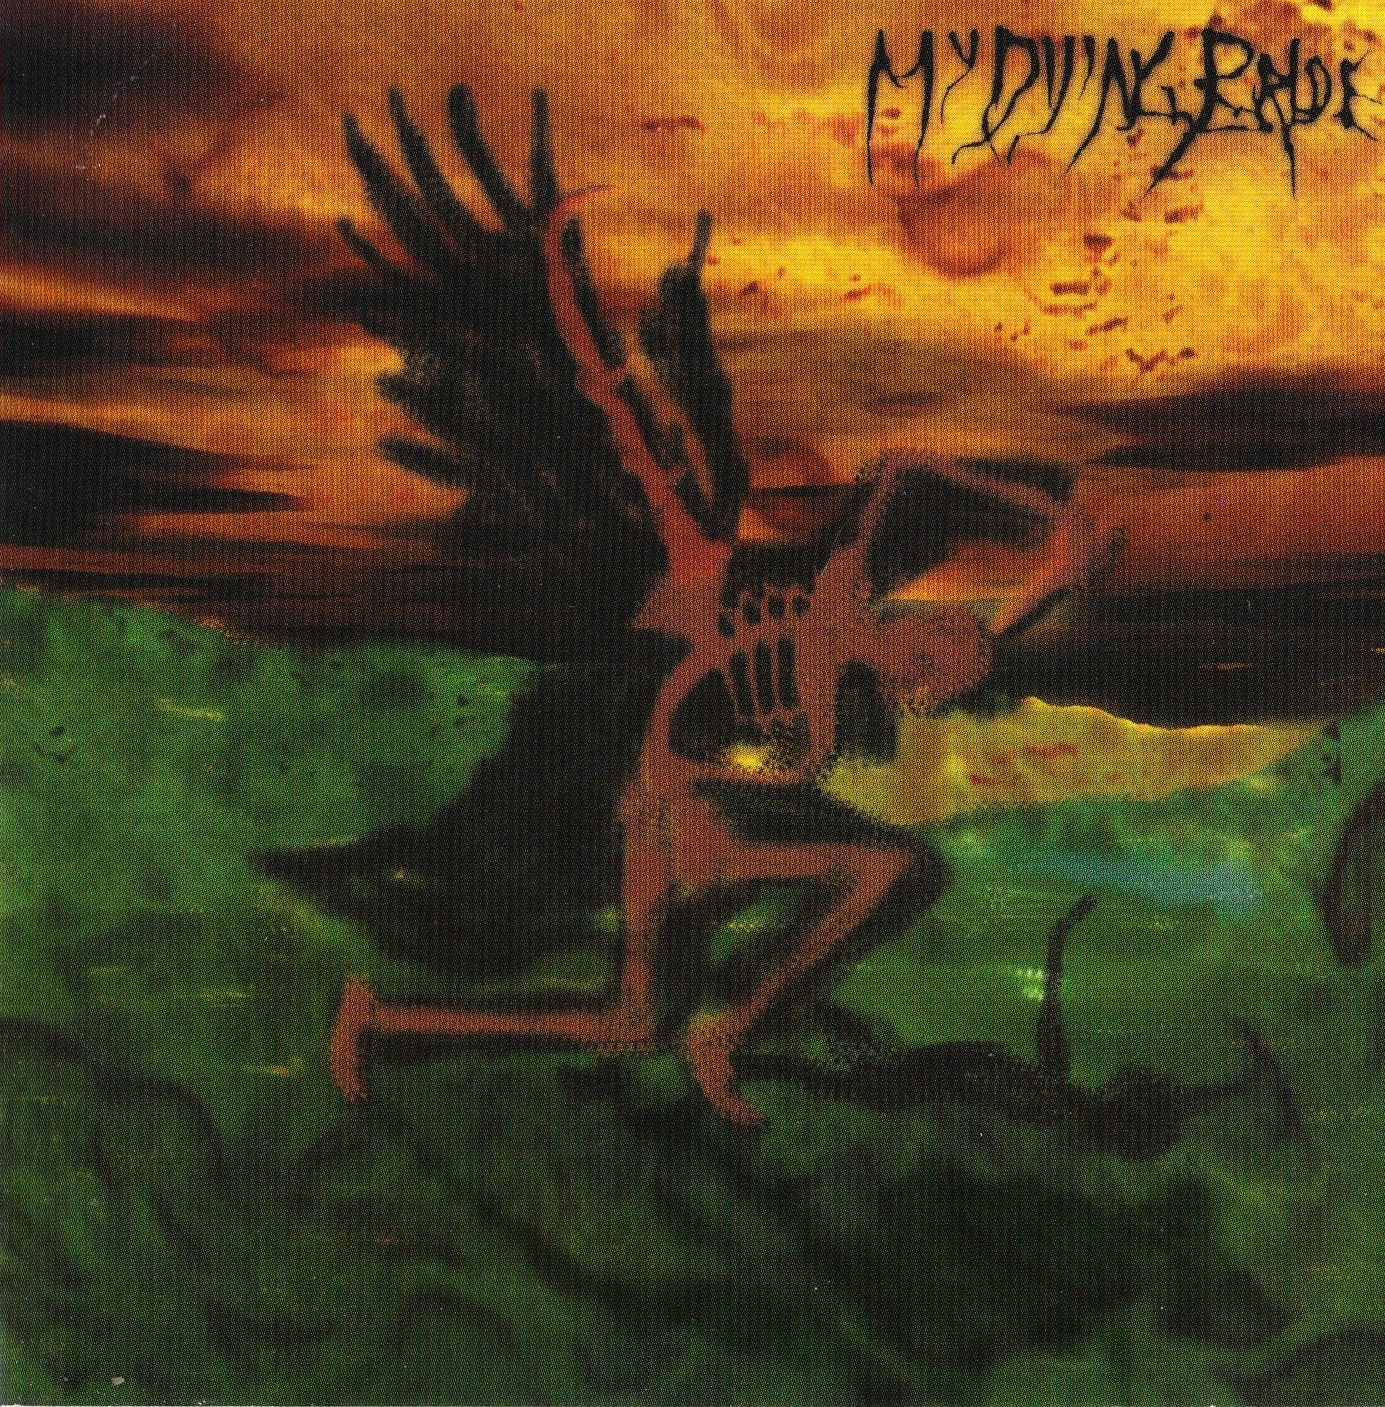 My Dying Bride — The Dreadful Hours (2001)